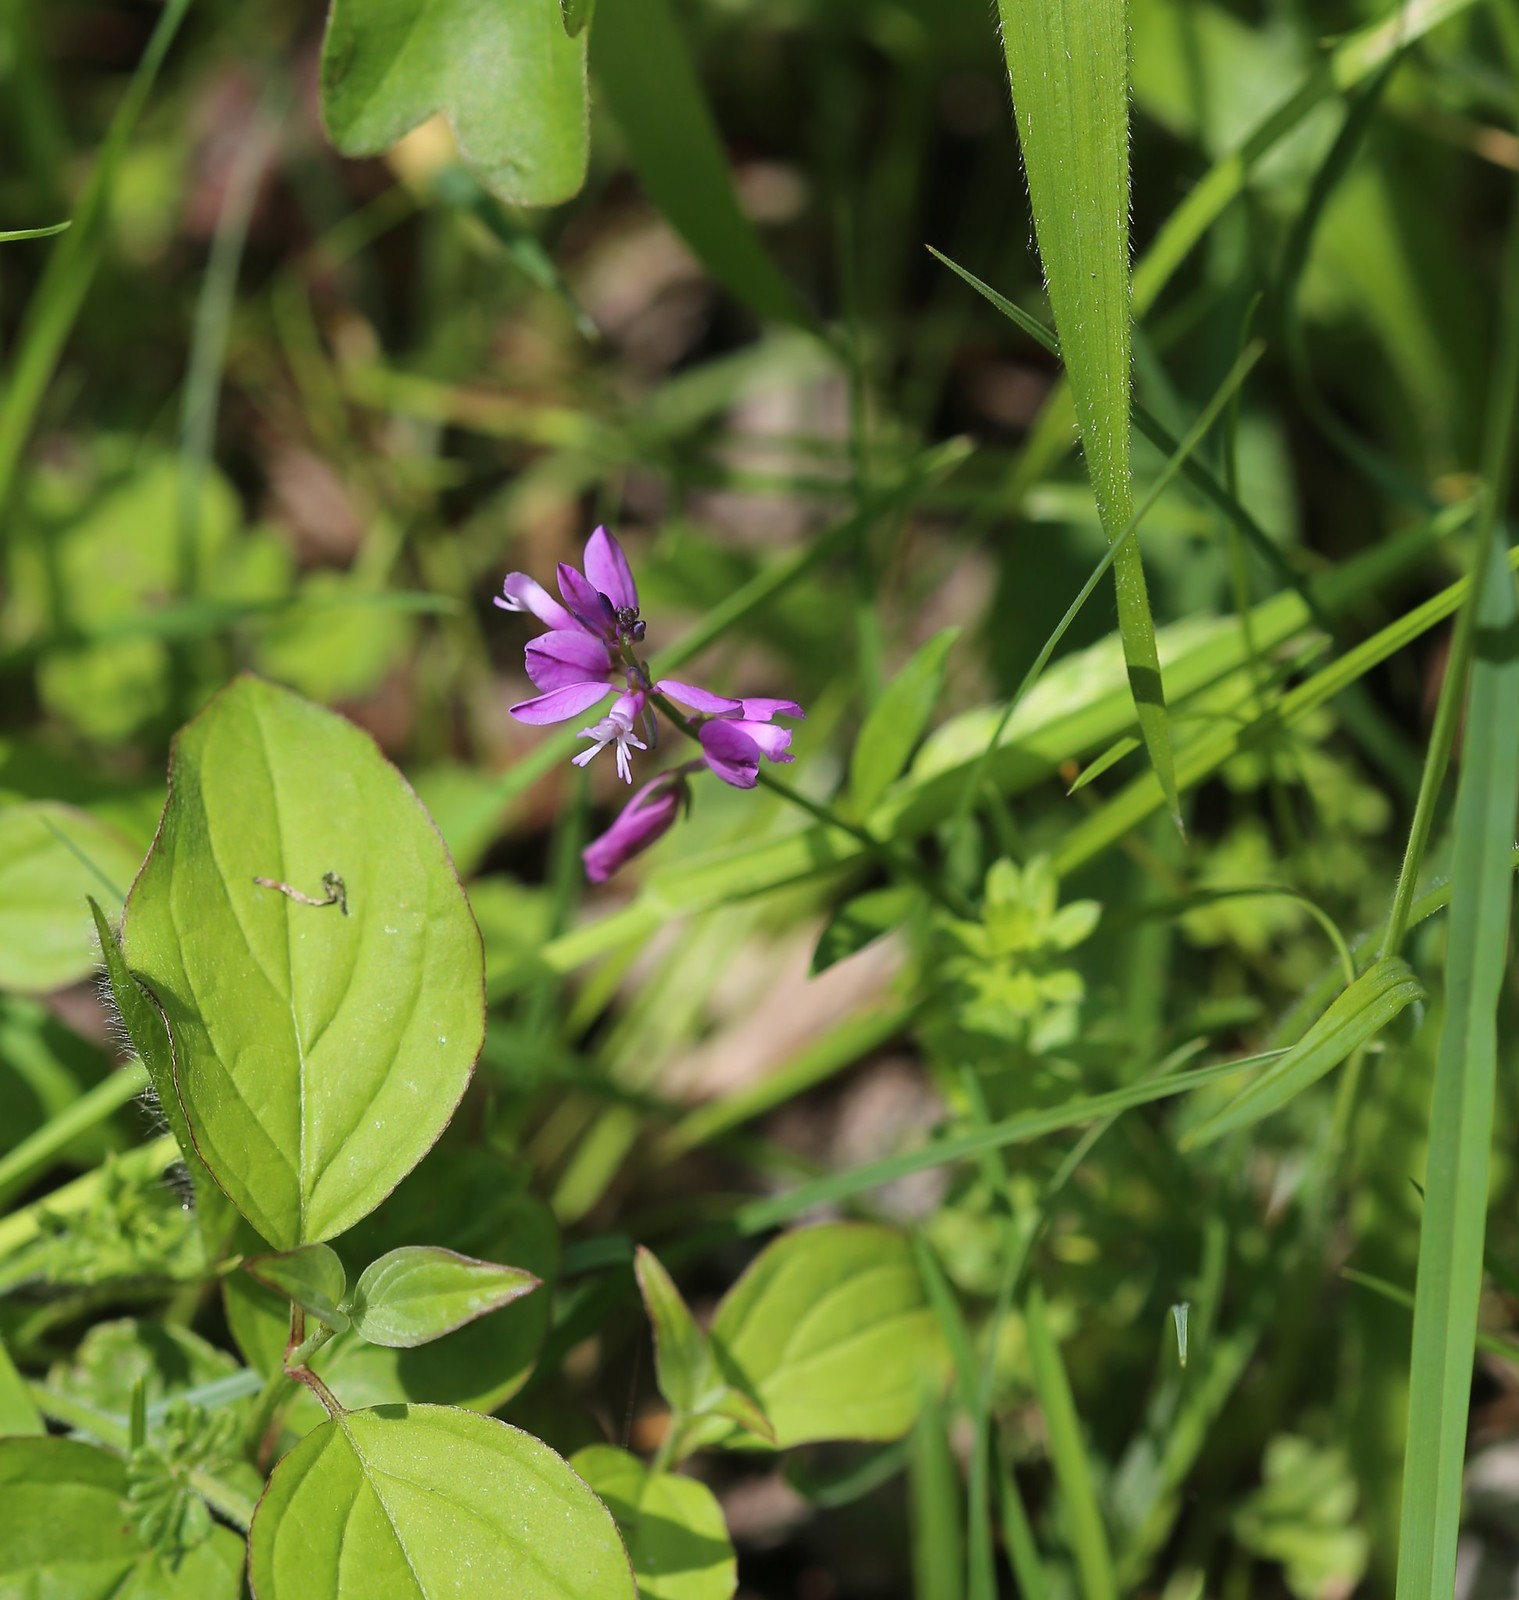 Milkwort - Otford to Eynsford Walk